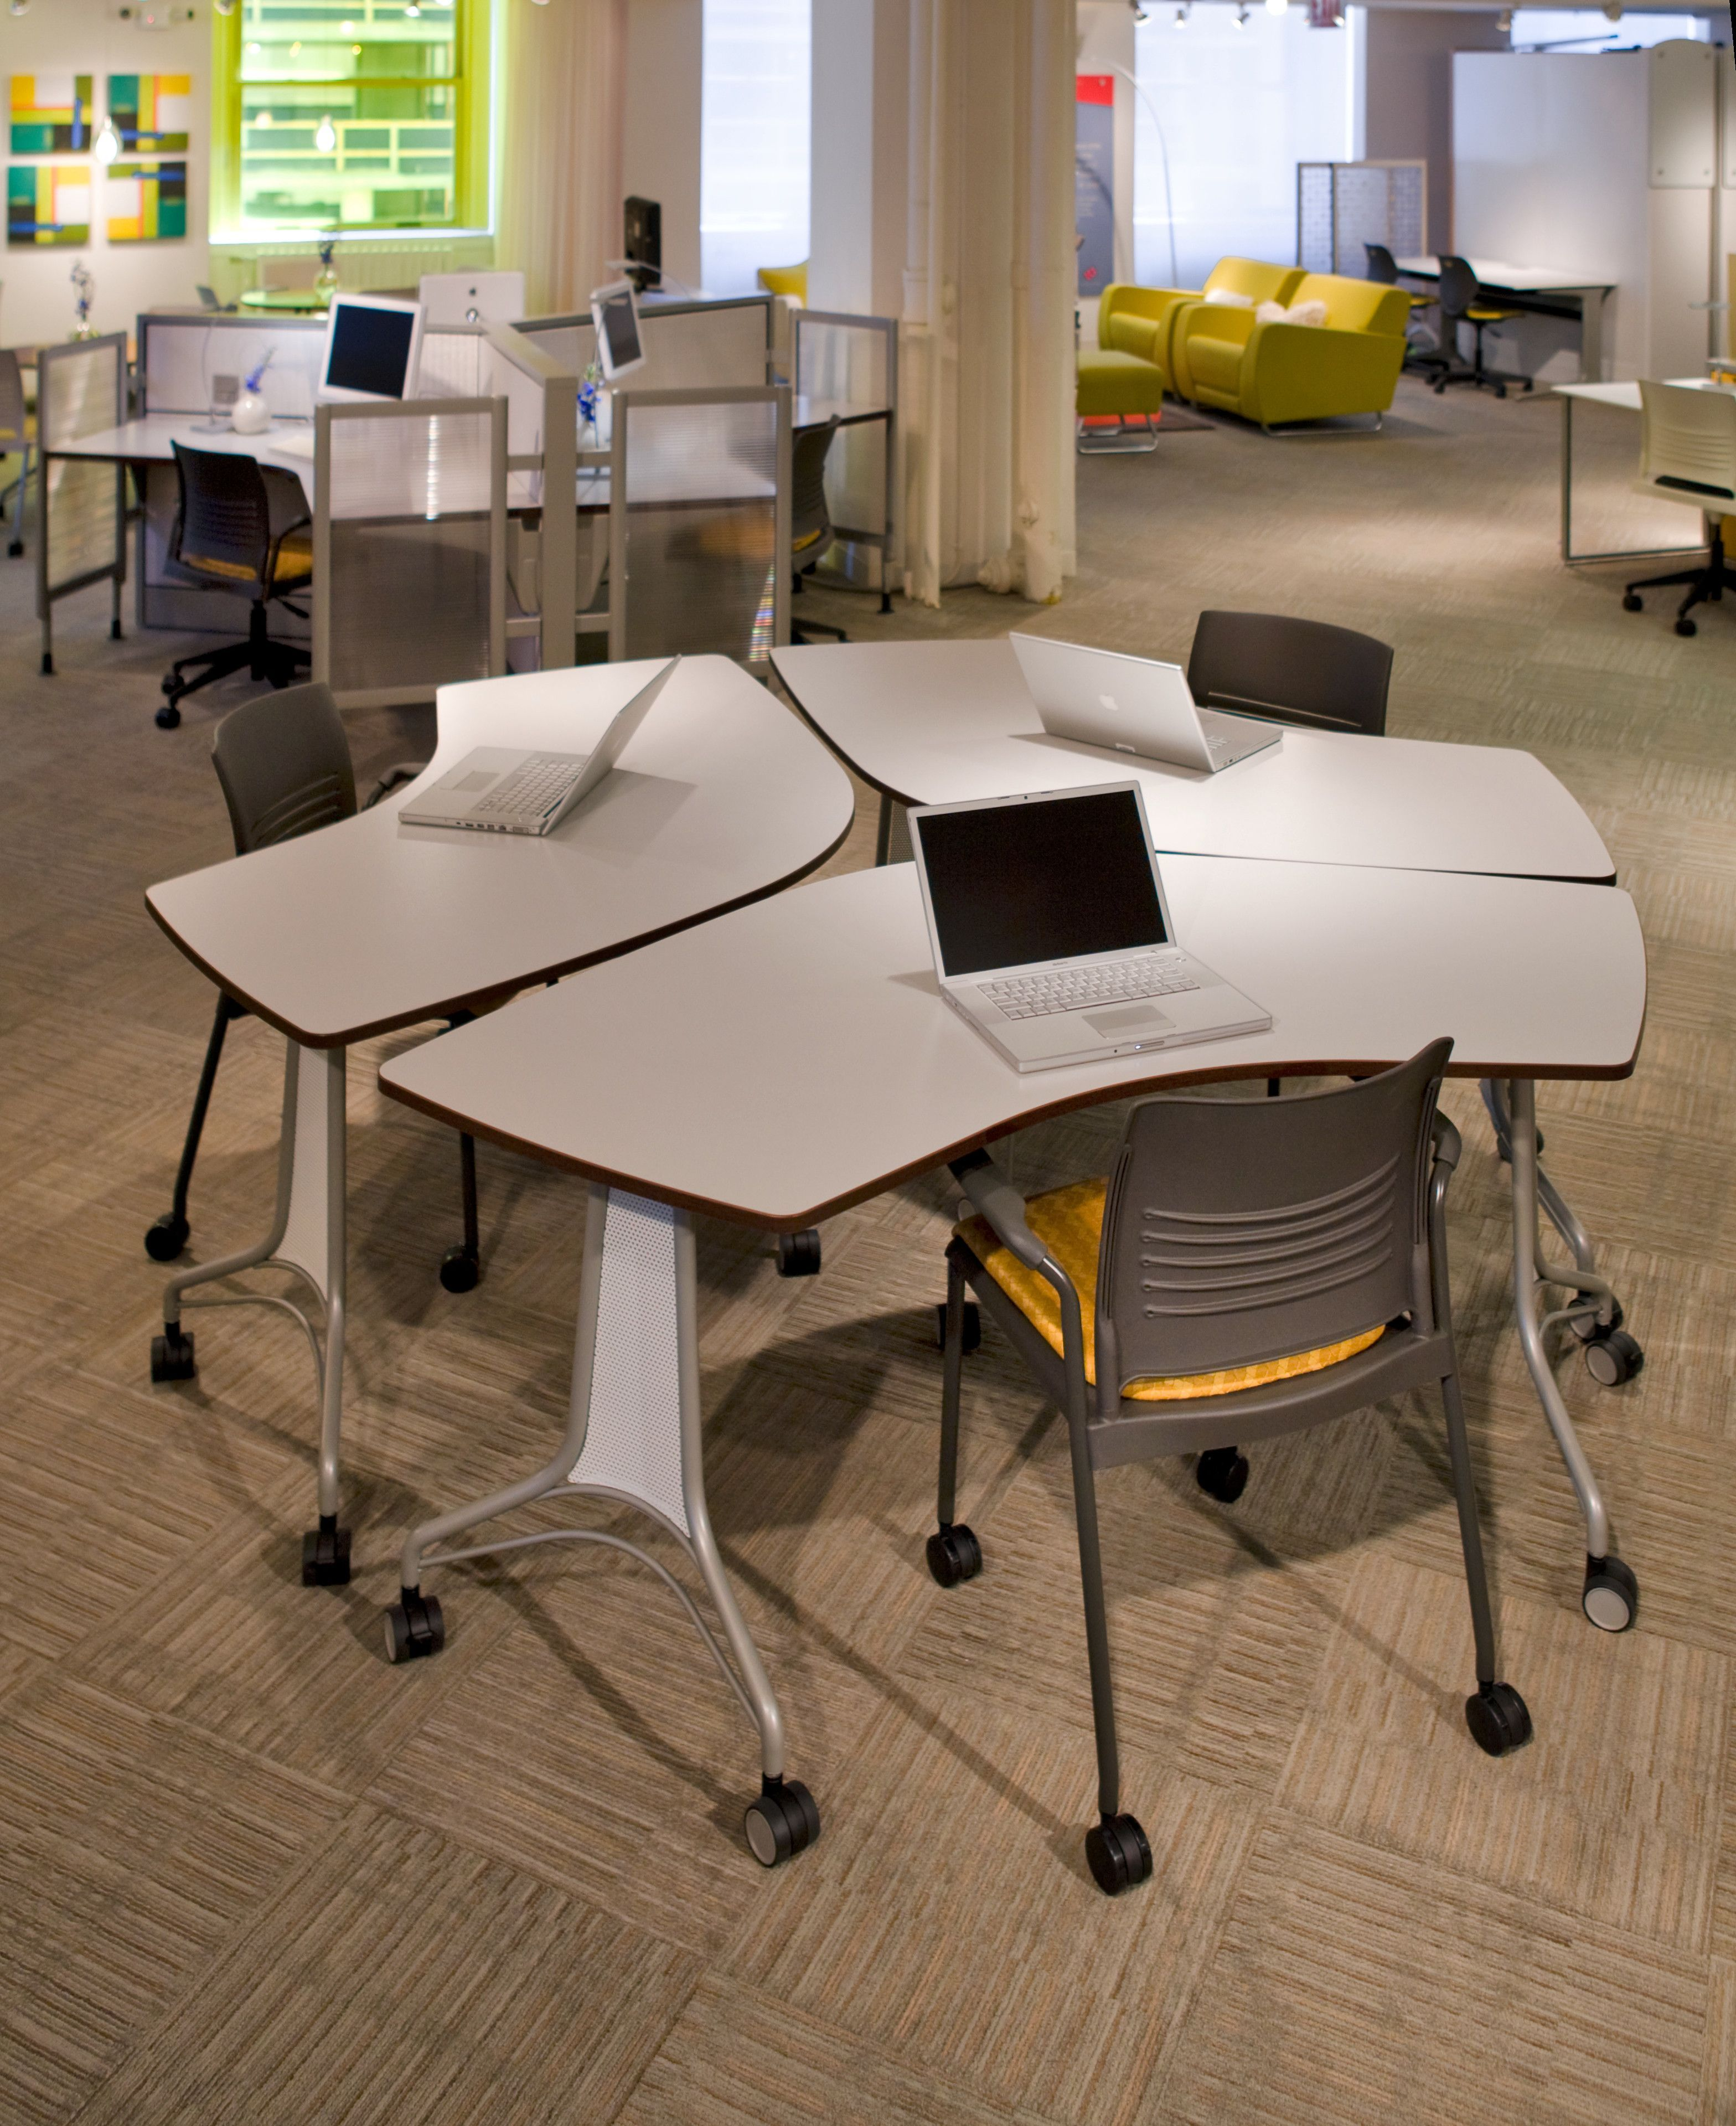 Ki Strive Chair Posture In A Enlite Tables And Chairs Make Reconfiguring